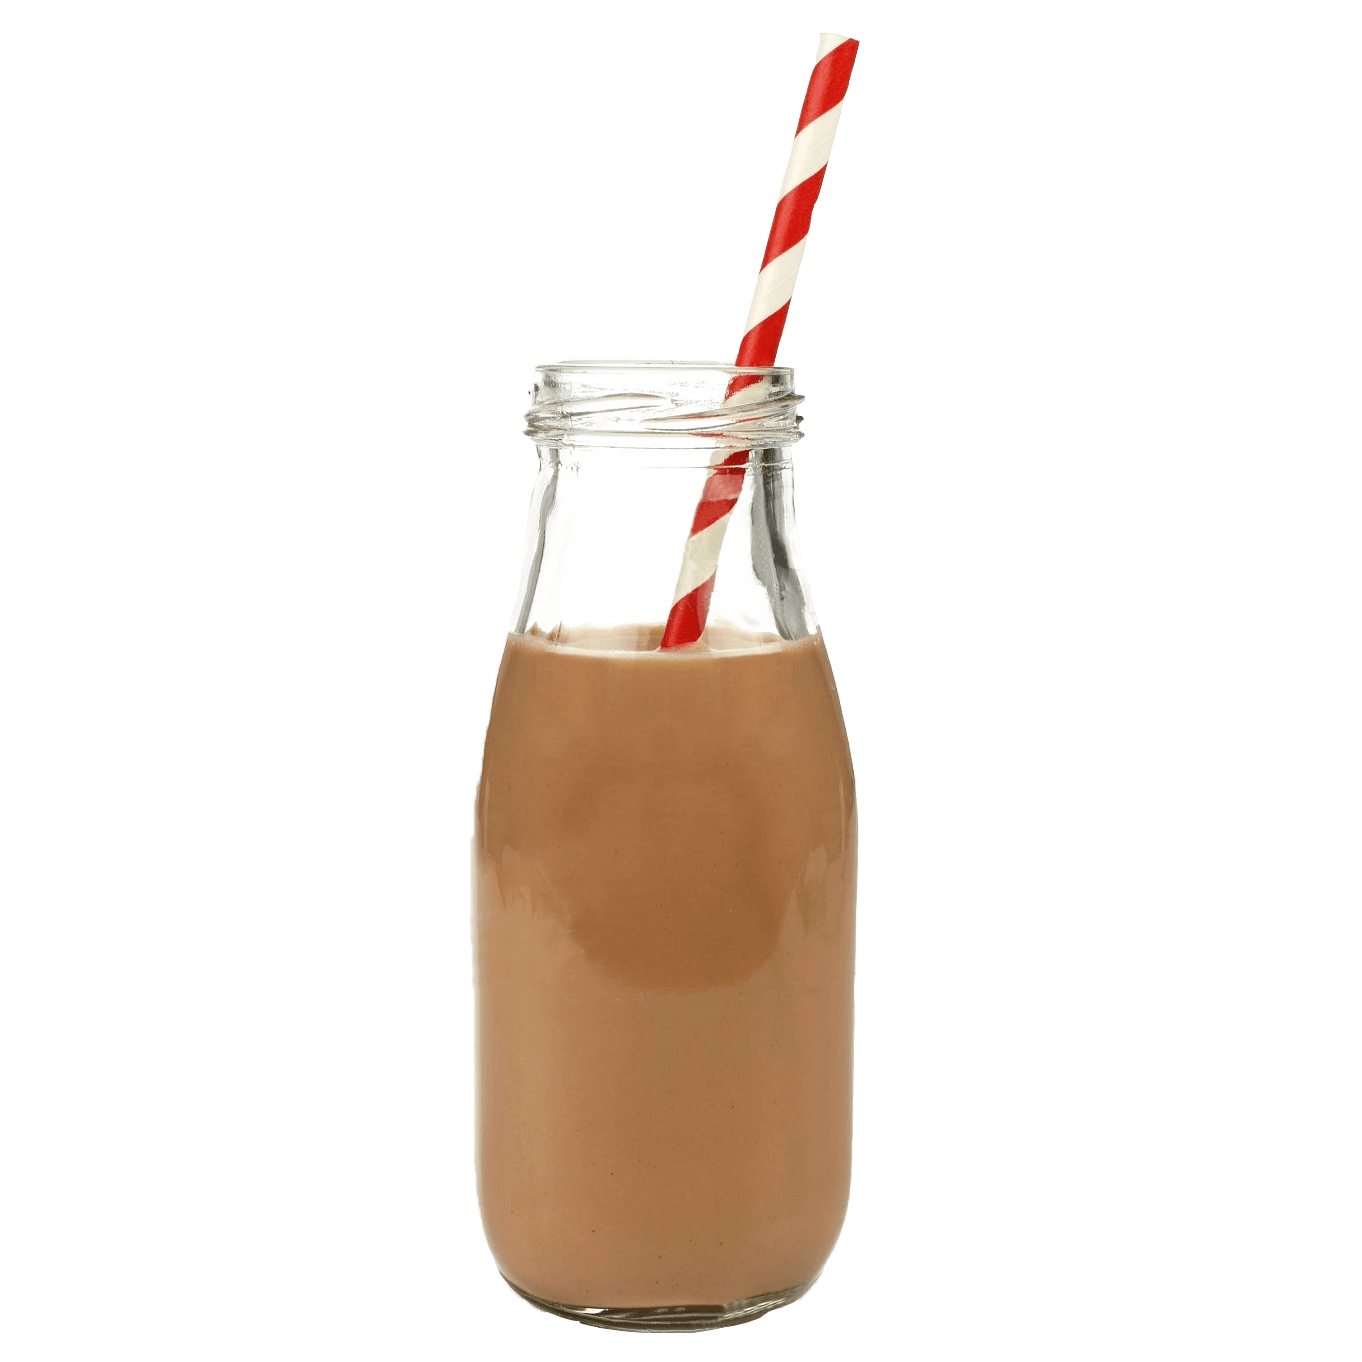 Chocolate-Milk-4.png - PNG Chocolate Milk